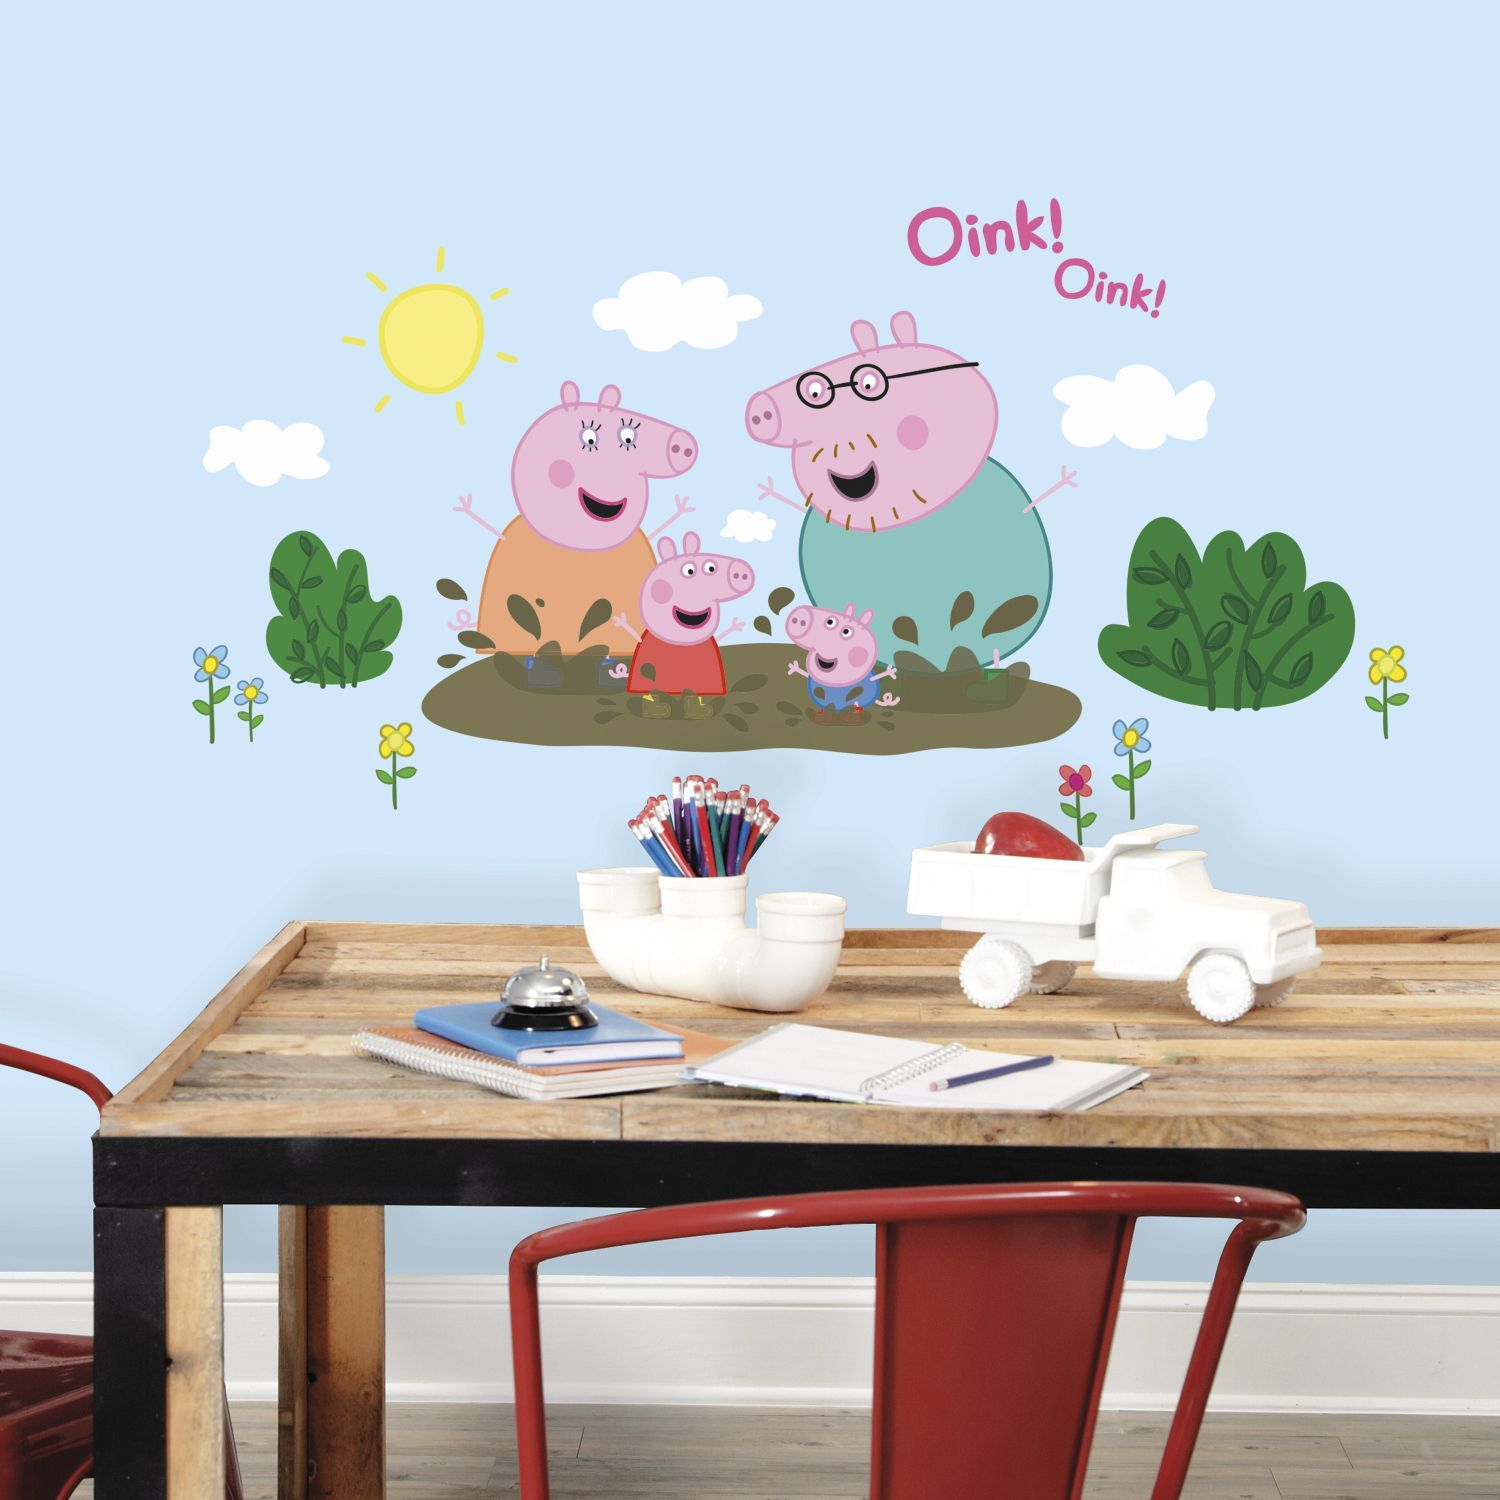 Roommates peppa pig family muddy puddles giant peel and stick wall roommates peppa pig family muddy puddles giant peel and stick wall decals amipublicfo Images